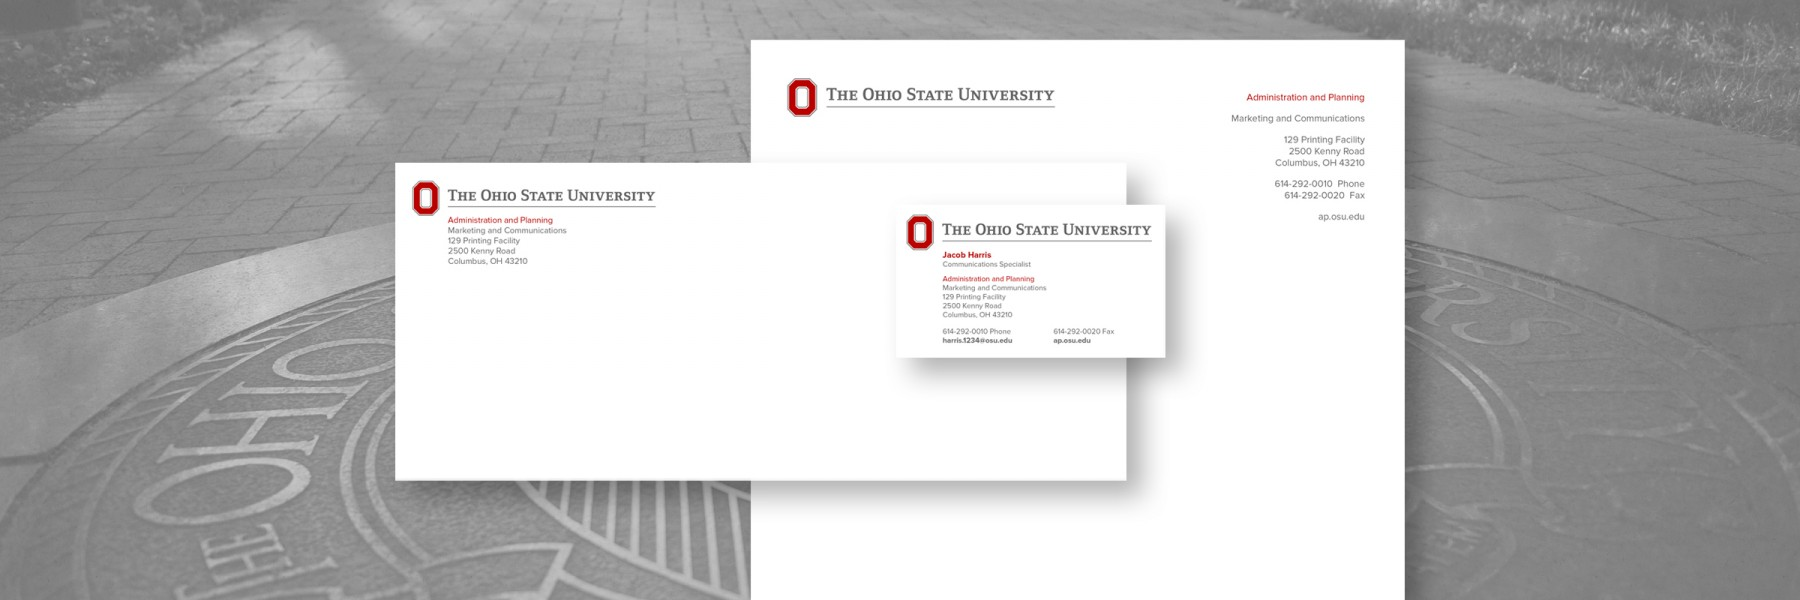 Home uniprint ohio state stationery official business cards letterhead and envelopes available only from uniprint magicingreecefo Choice Image